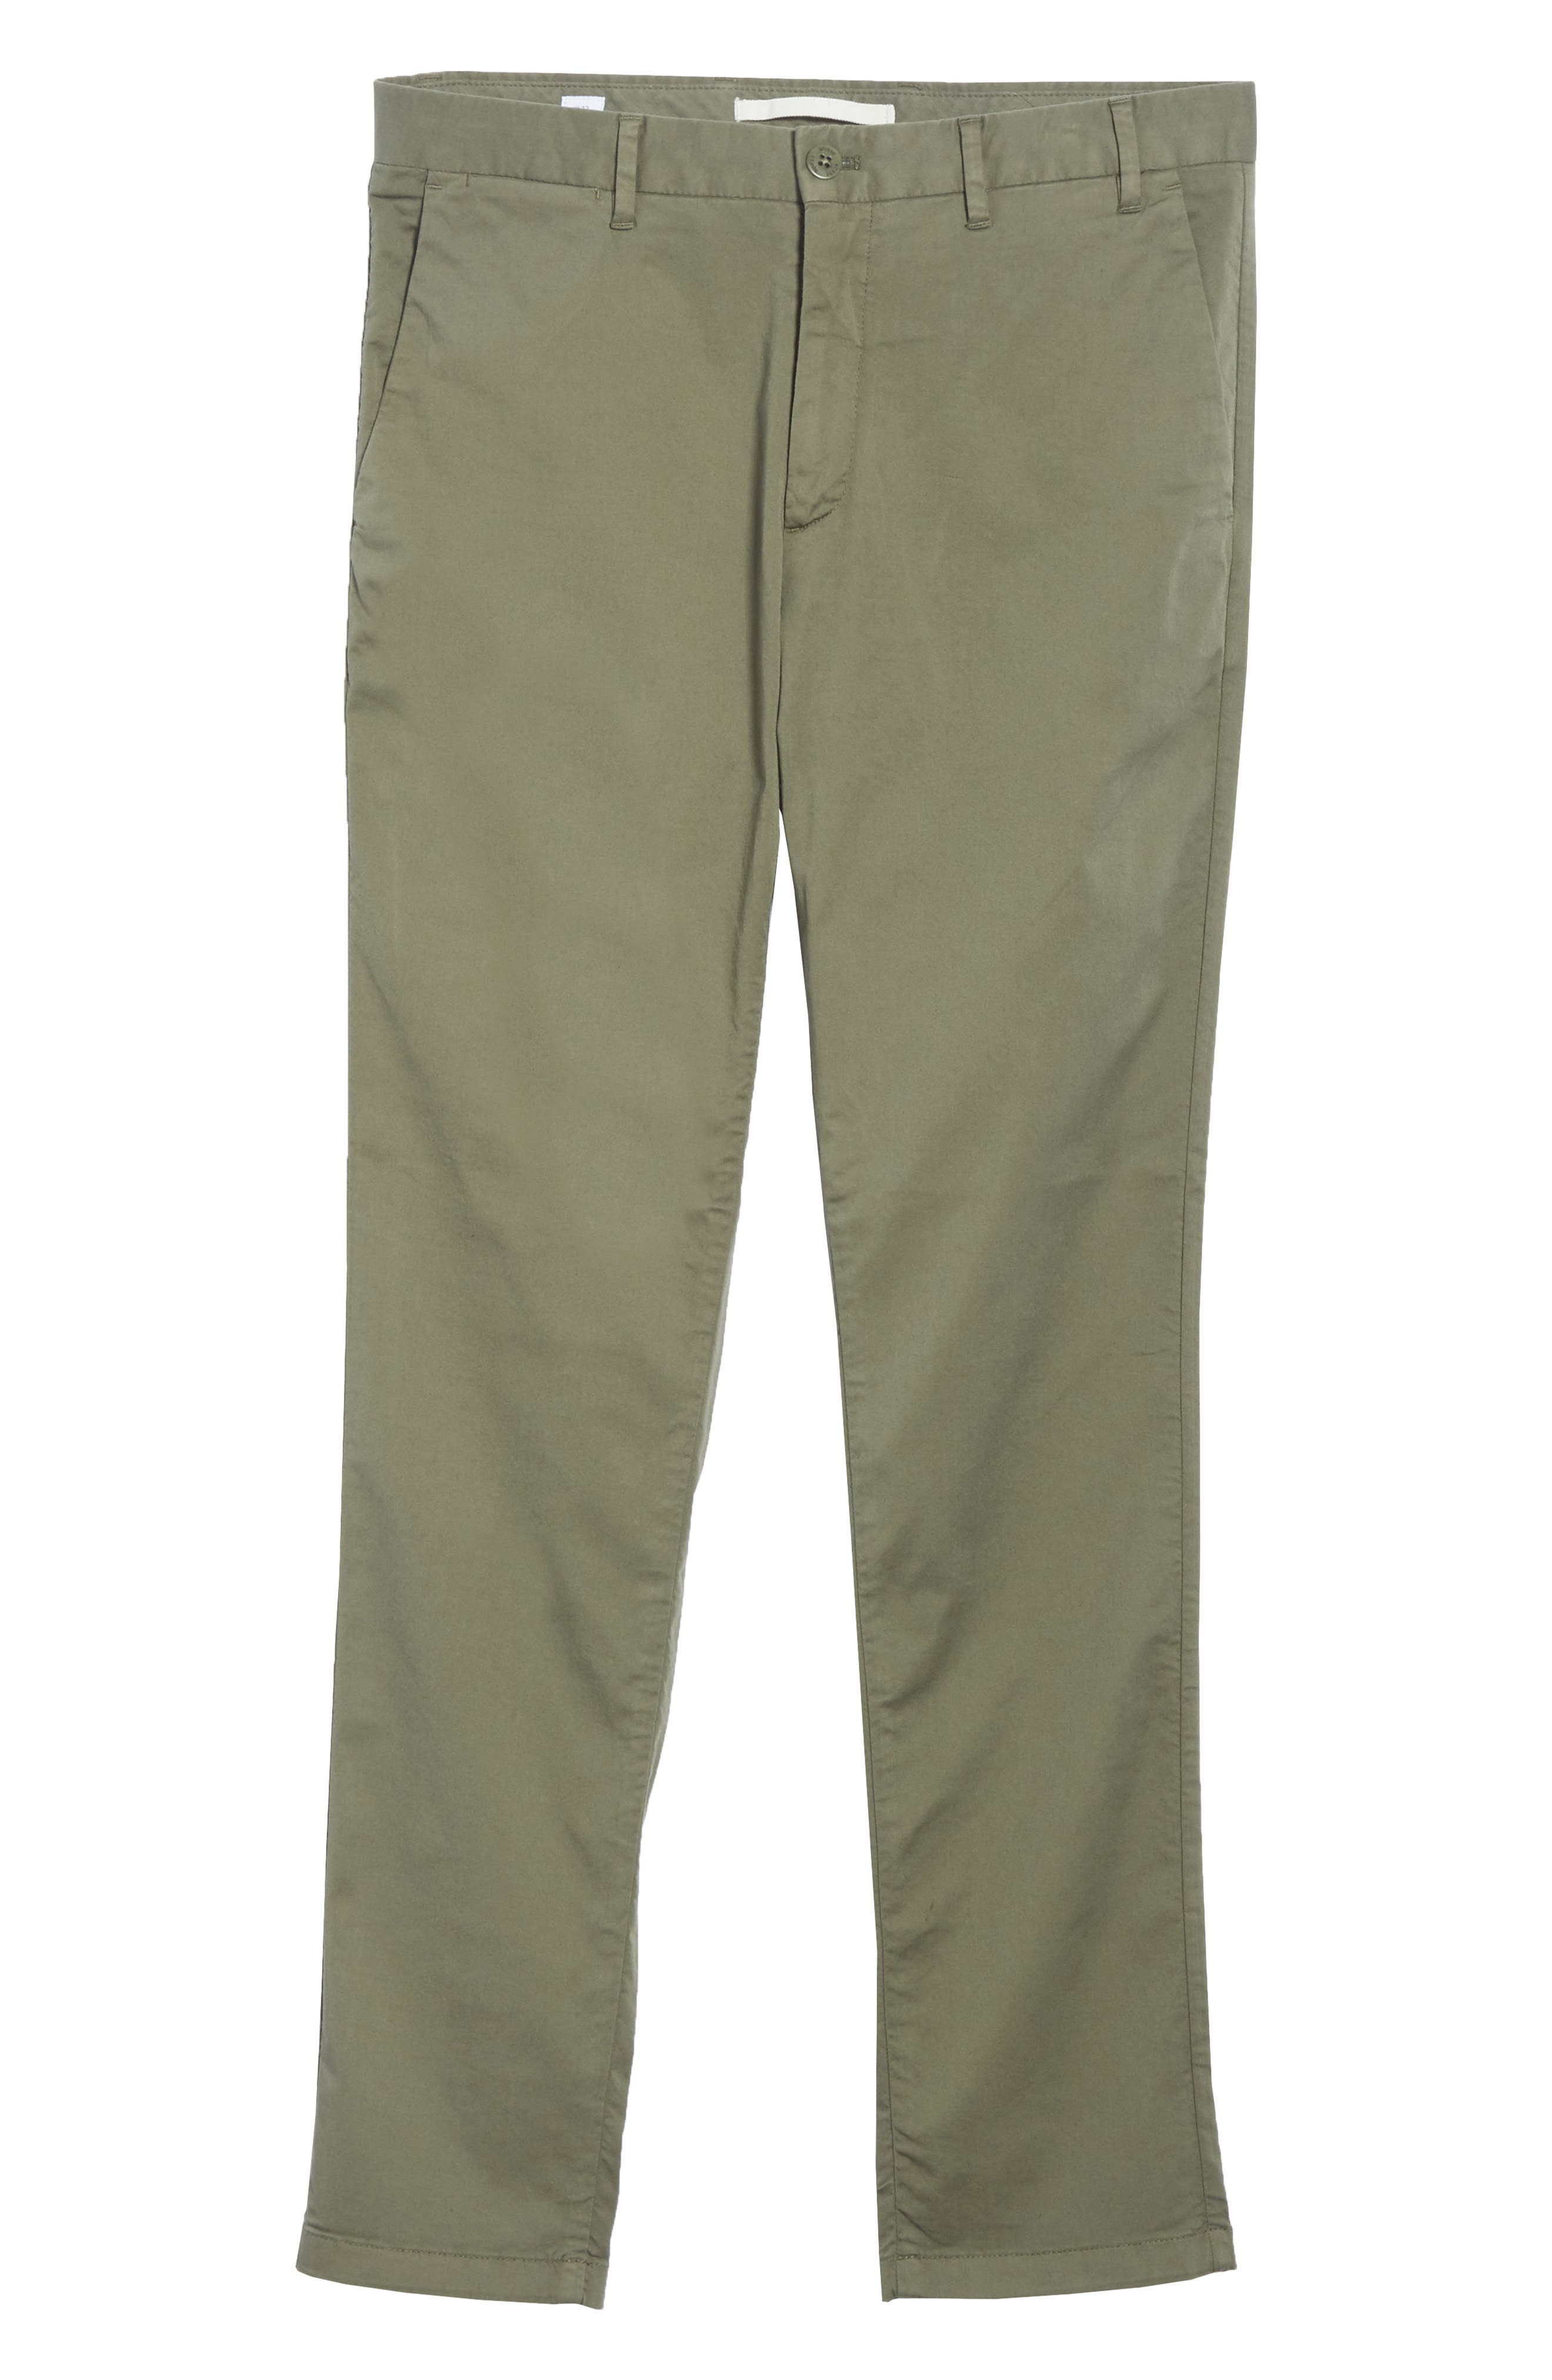 Aros Slim Fit Stretch Twill Pants,                             Alternate thumbnail 6, color,                             DRIED OLIVE